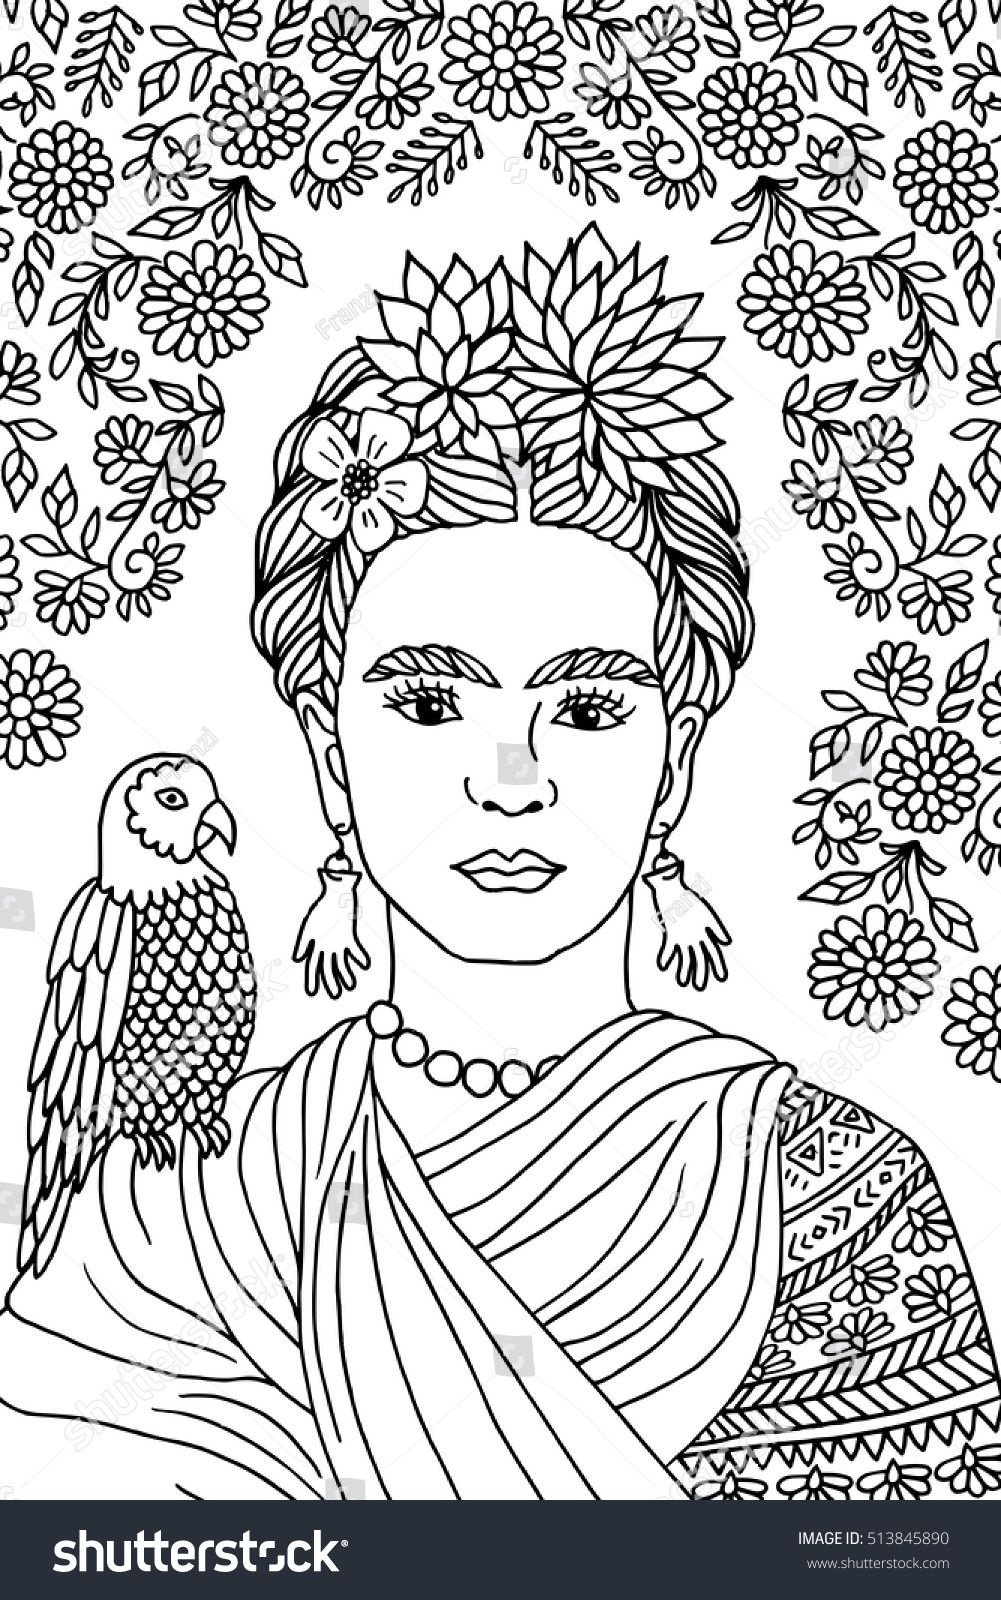 1001x1600 Shocking Hand Drawn Portrait Of Frida Kahlo With Floral Background